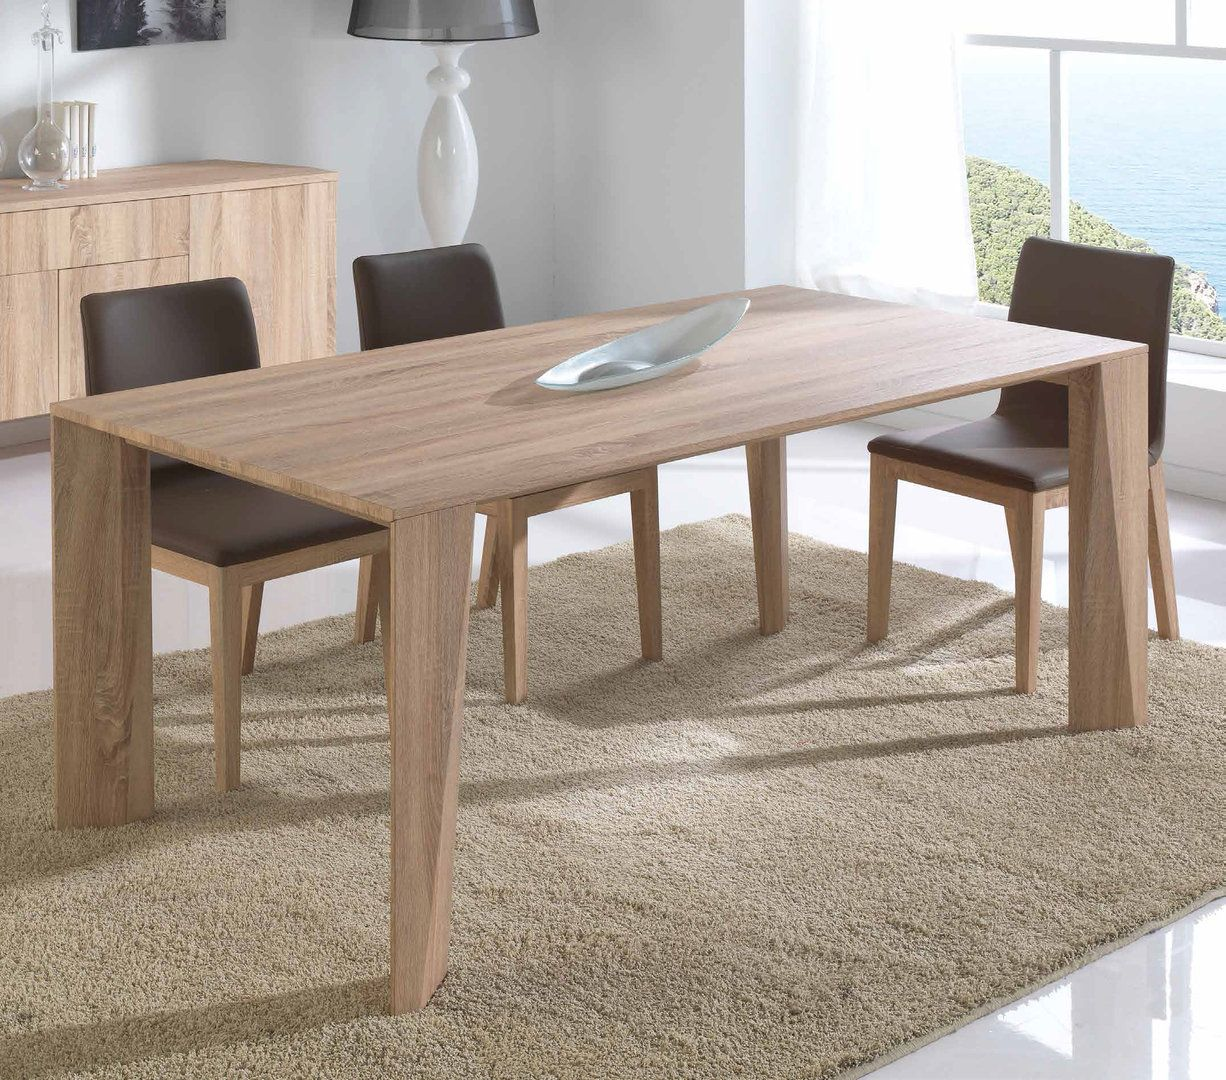 Mesa de comedor moderna london muebles interiordesign - Mesas salon extensibles modernas ...